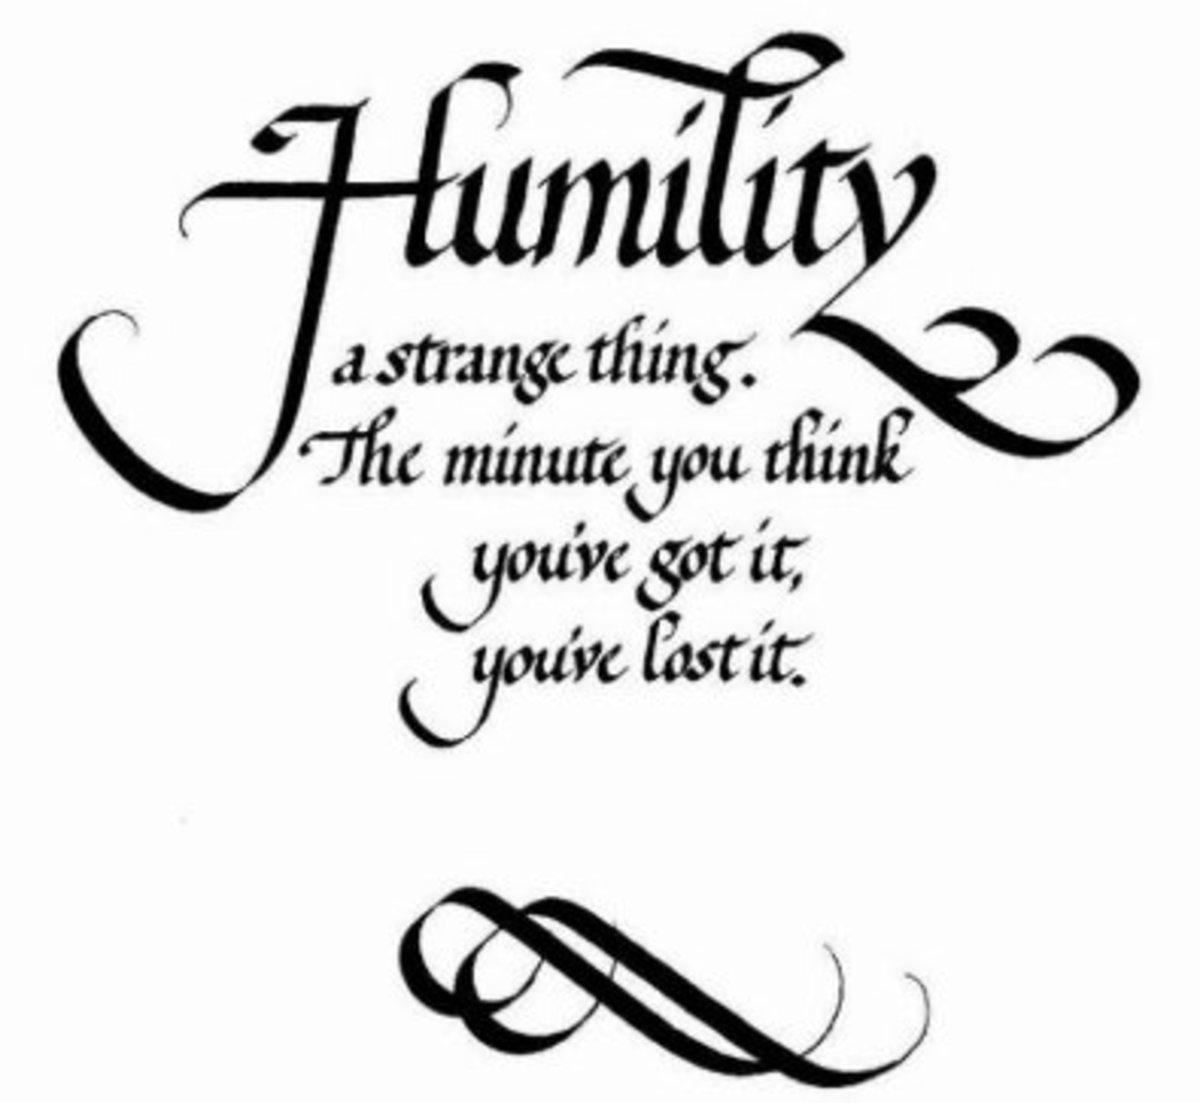 humility-the-hallmark-of-a-devotee-my-ego-crushing-experience-with-sri-sathya-sai